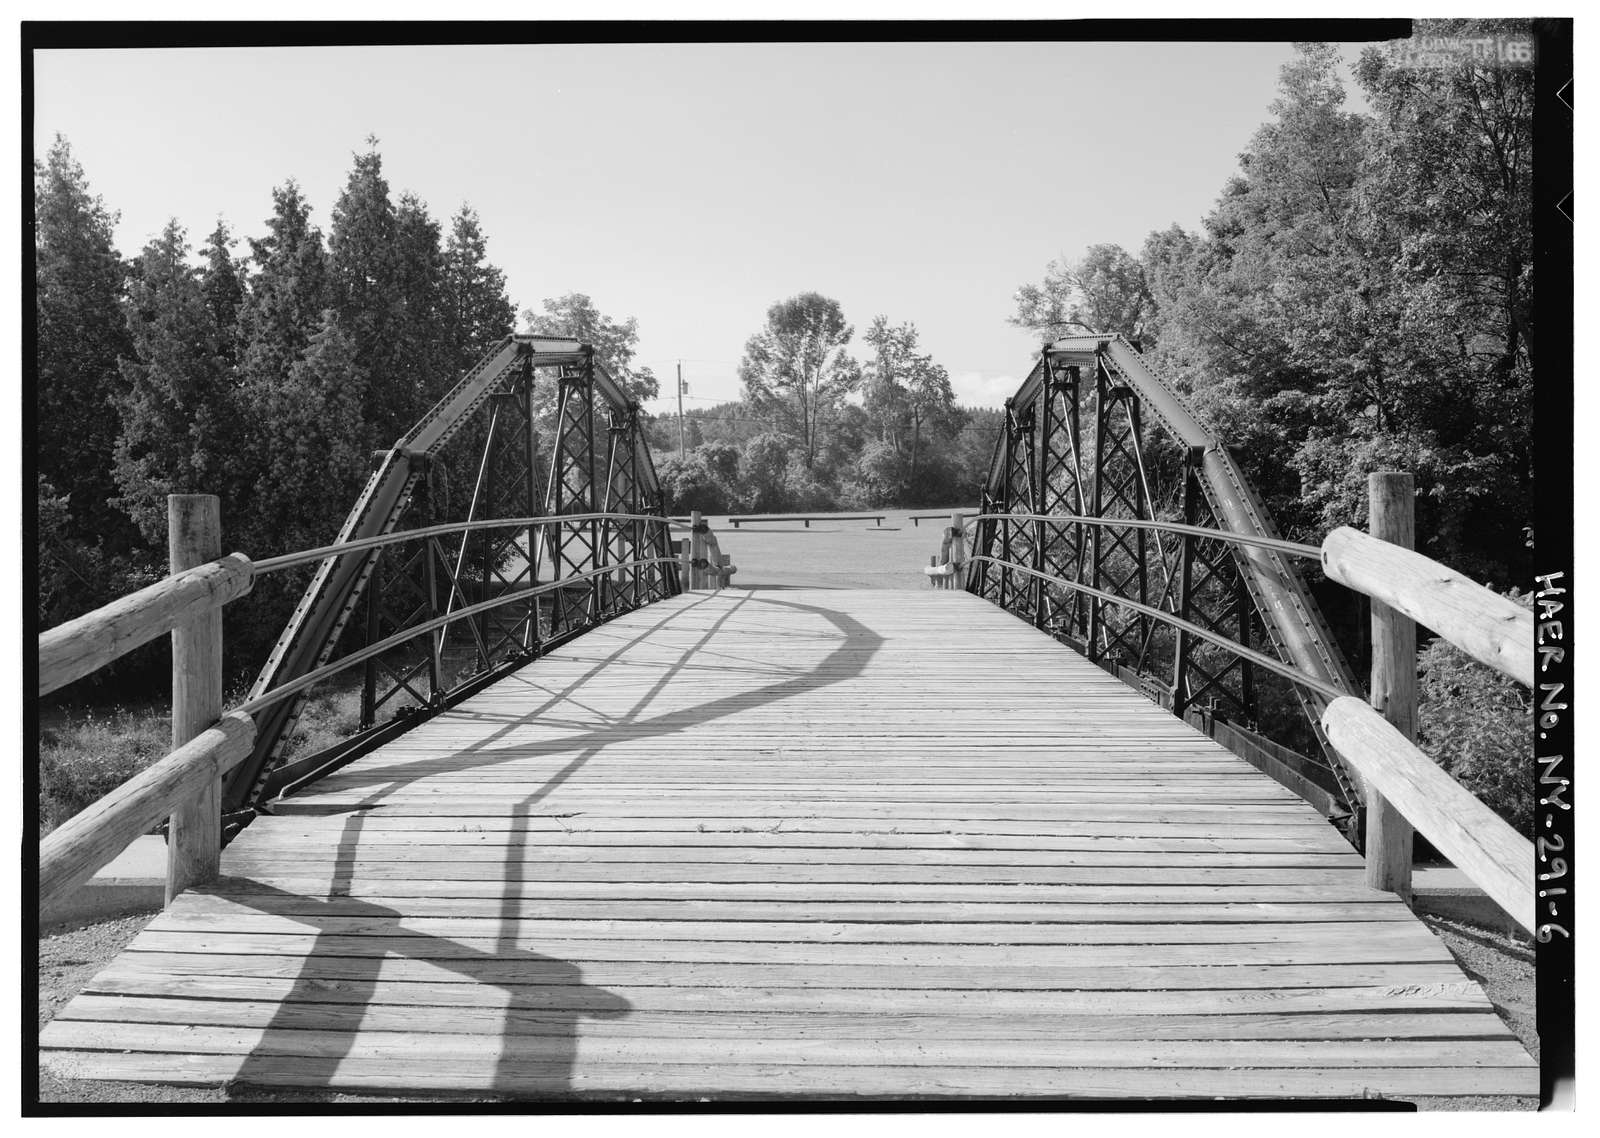 Cooper's Tubular Arch Bridge, Spanning Old Erie Canal north of Linden Street, Fayetteville, Onondaga County, NY